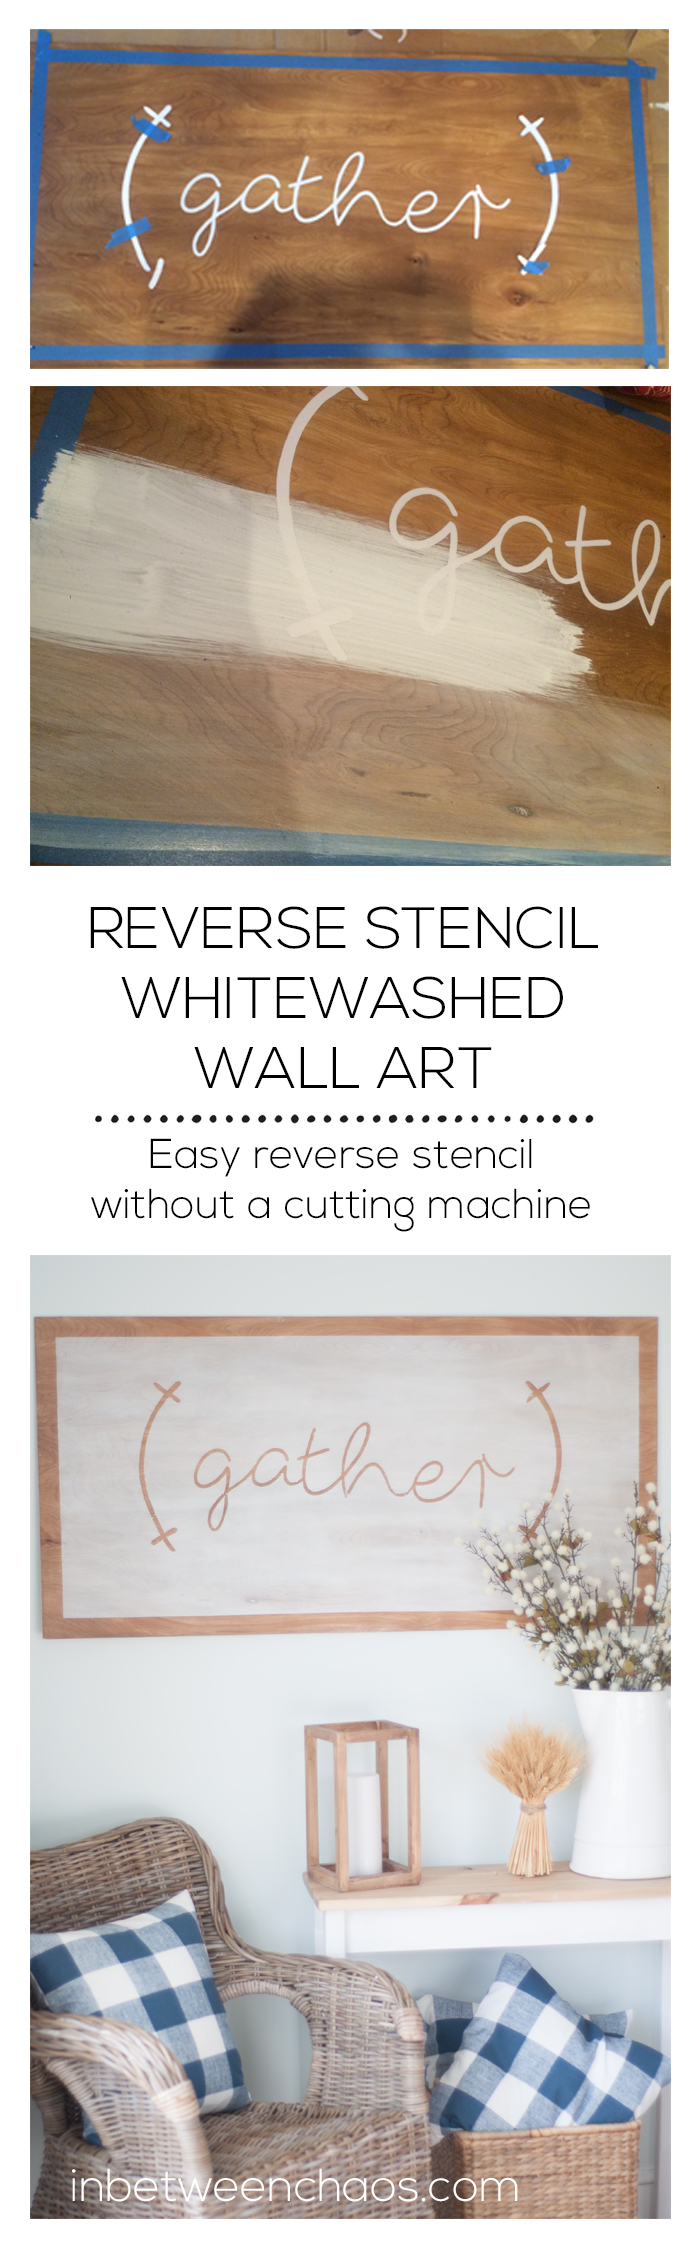 Create a whitewashed reverse stencil sign without a cutting machine | inbetweenchaos.com